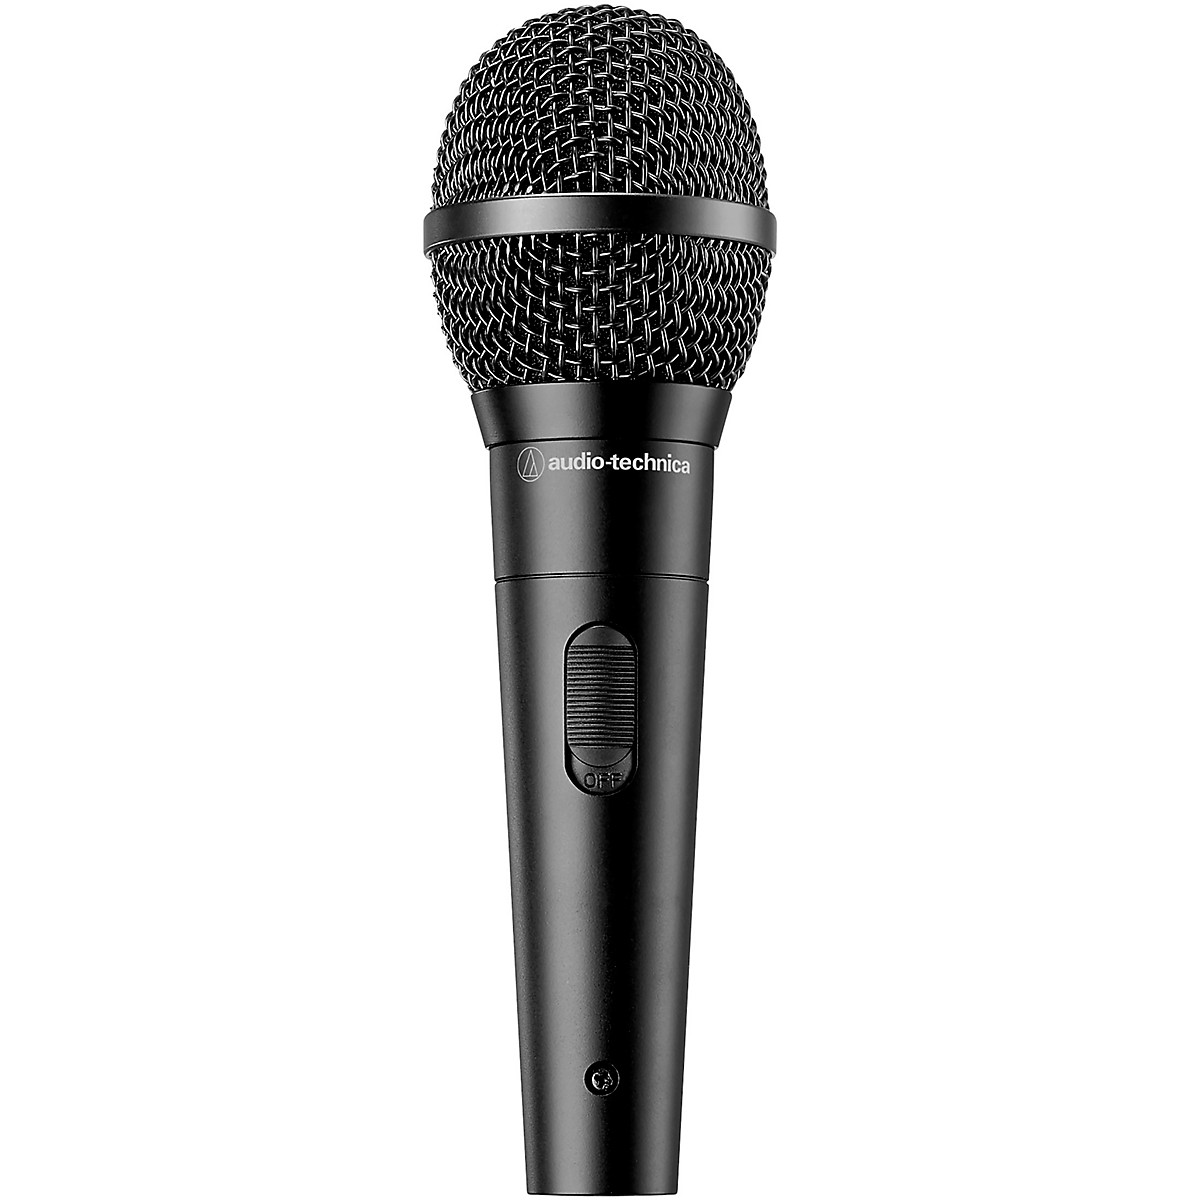 Audio-Technica ATR1300X Unidirectional Dynamic Vocal/Instrument Microphone